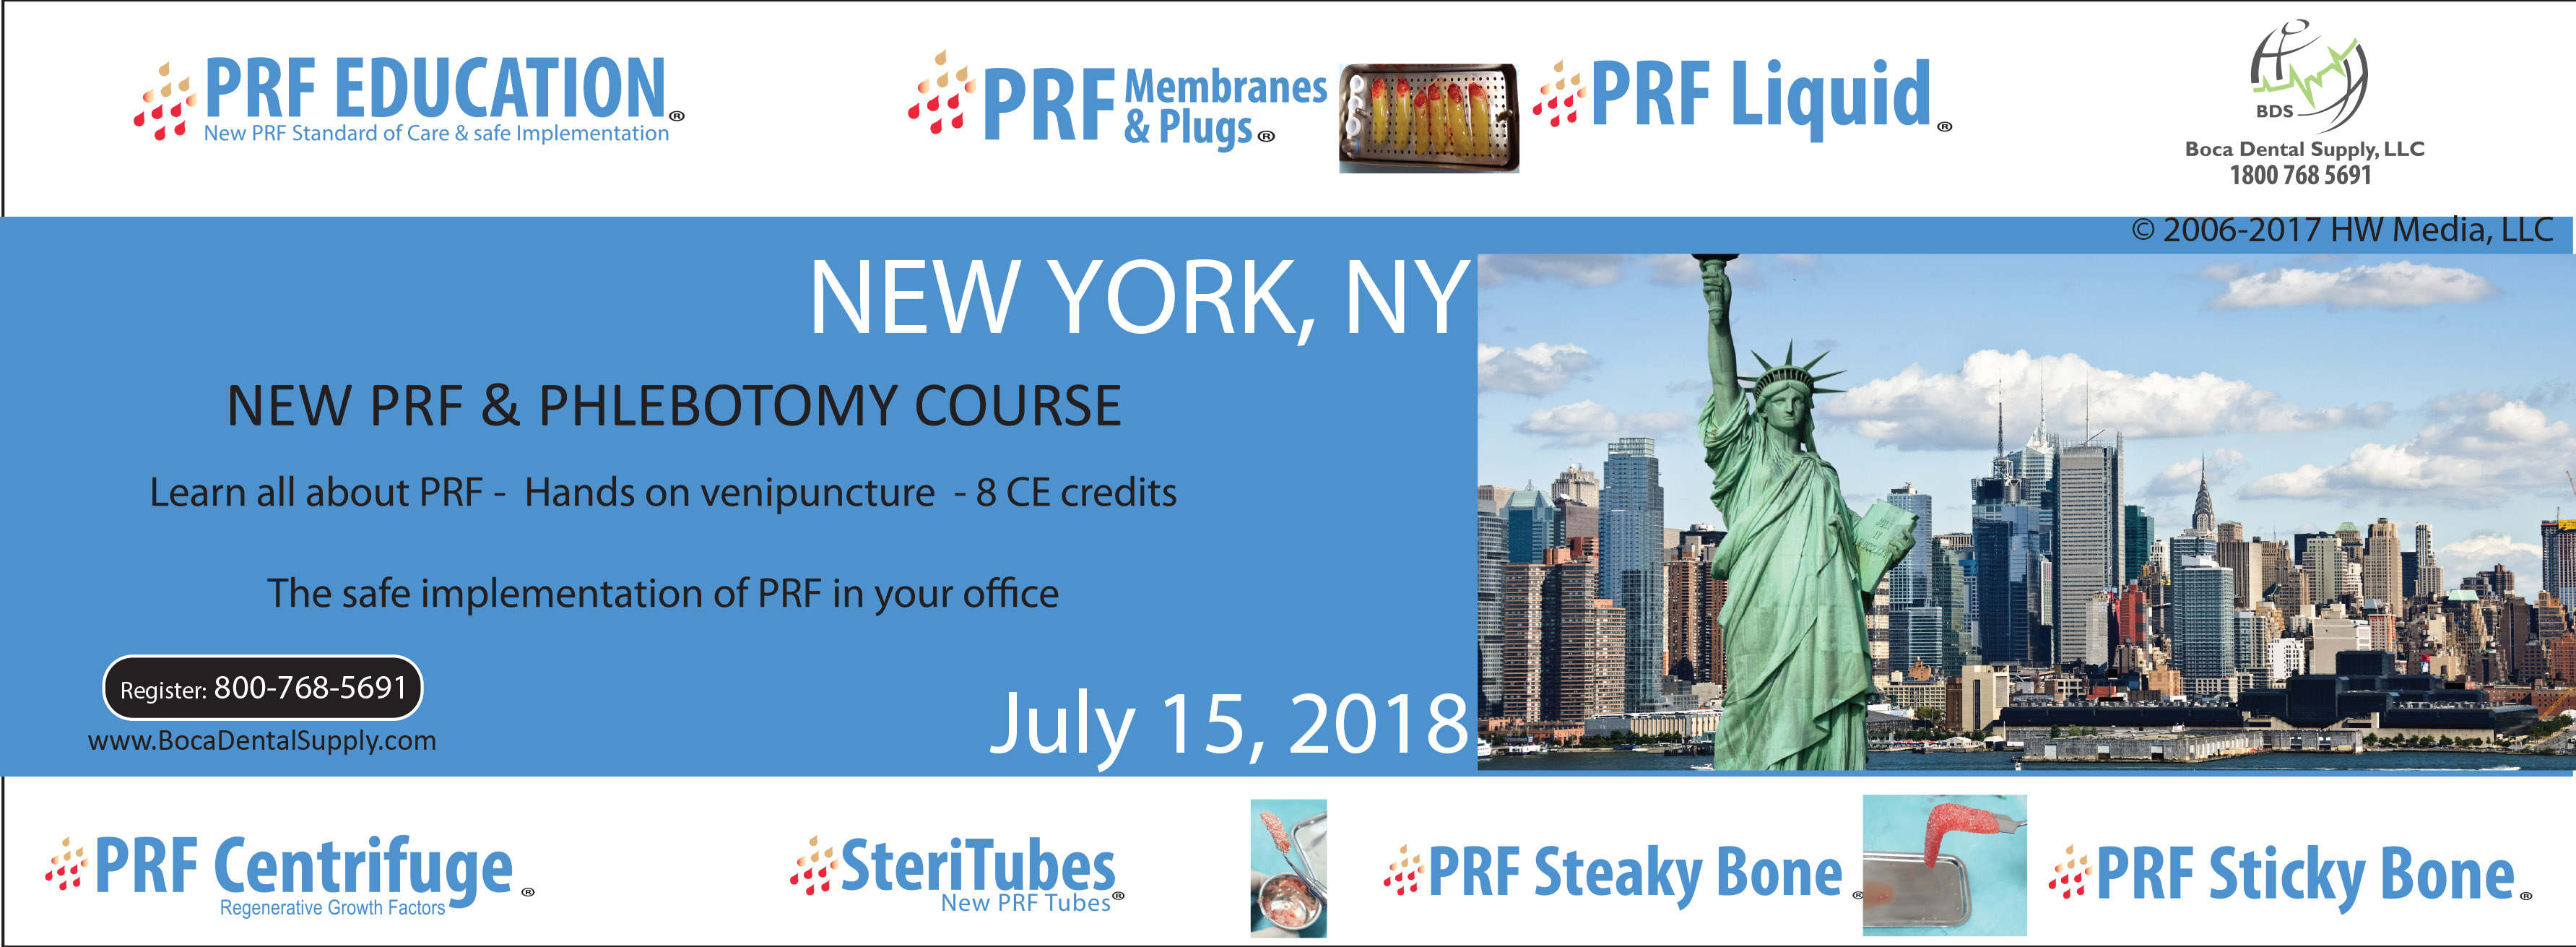 prf-course-ny-july-2018.jpg